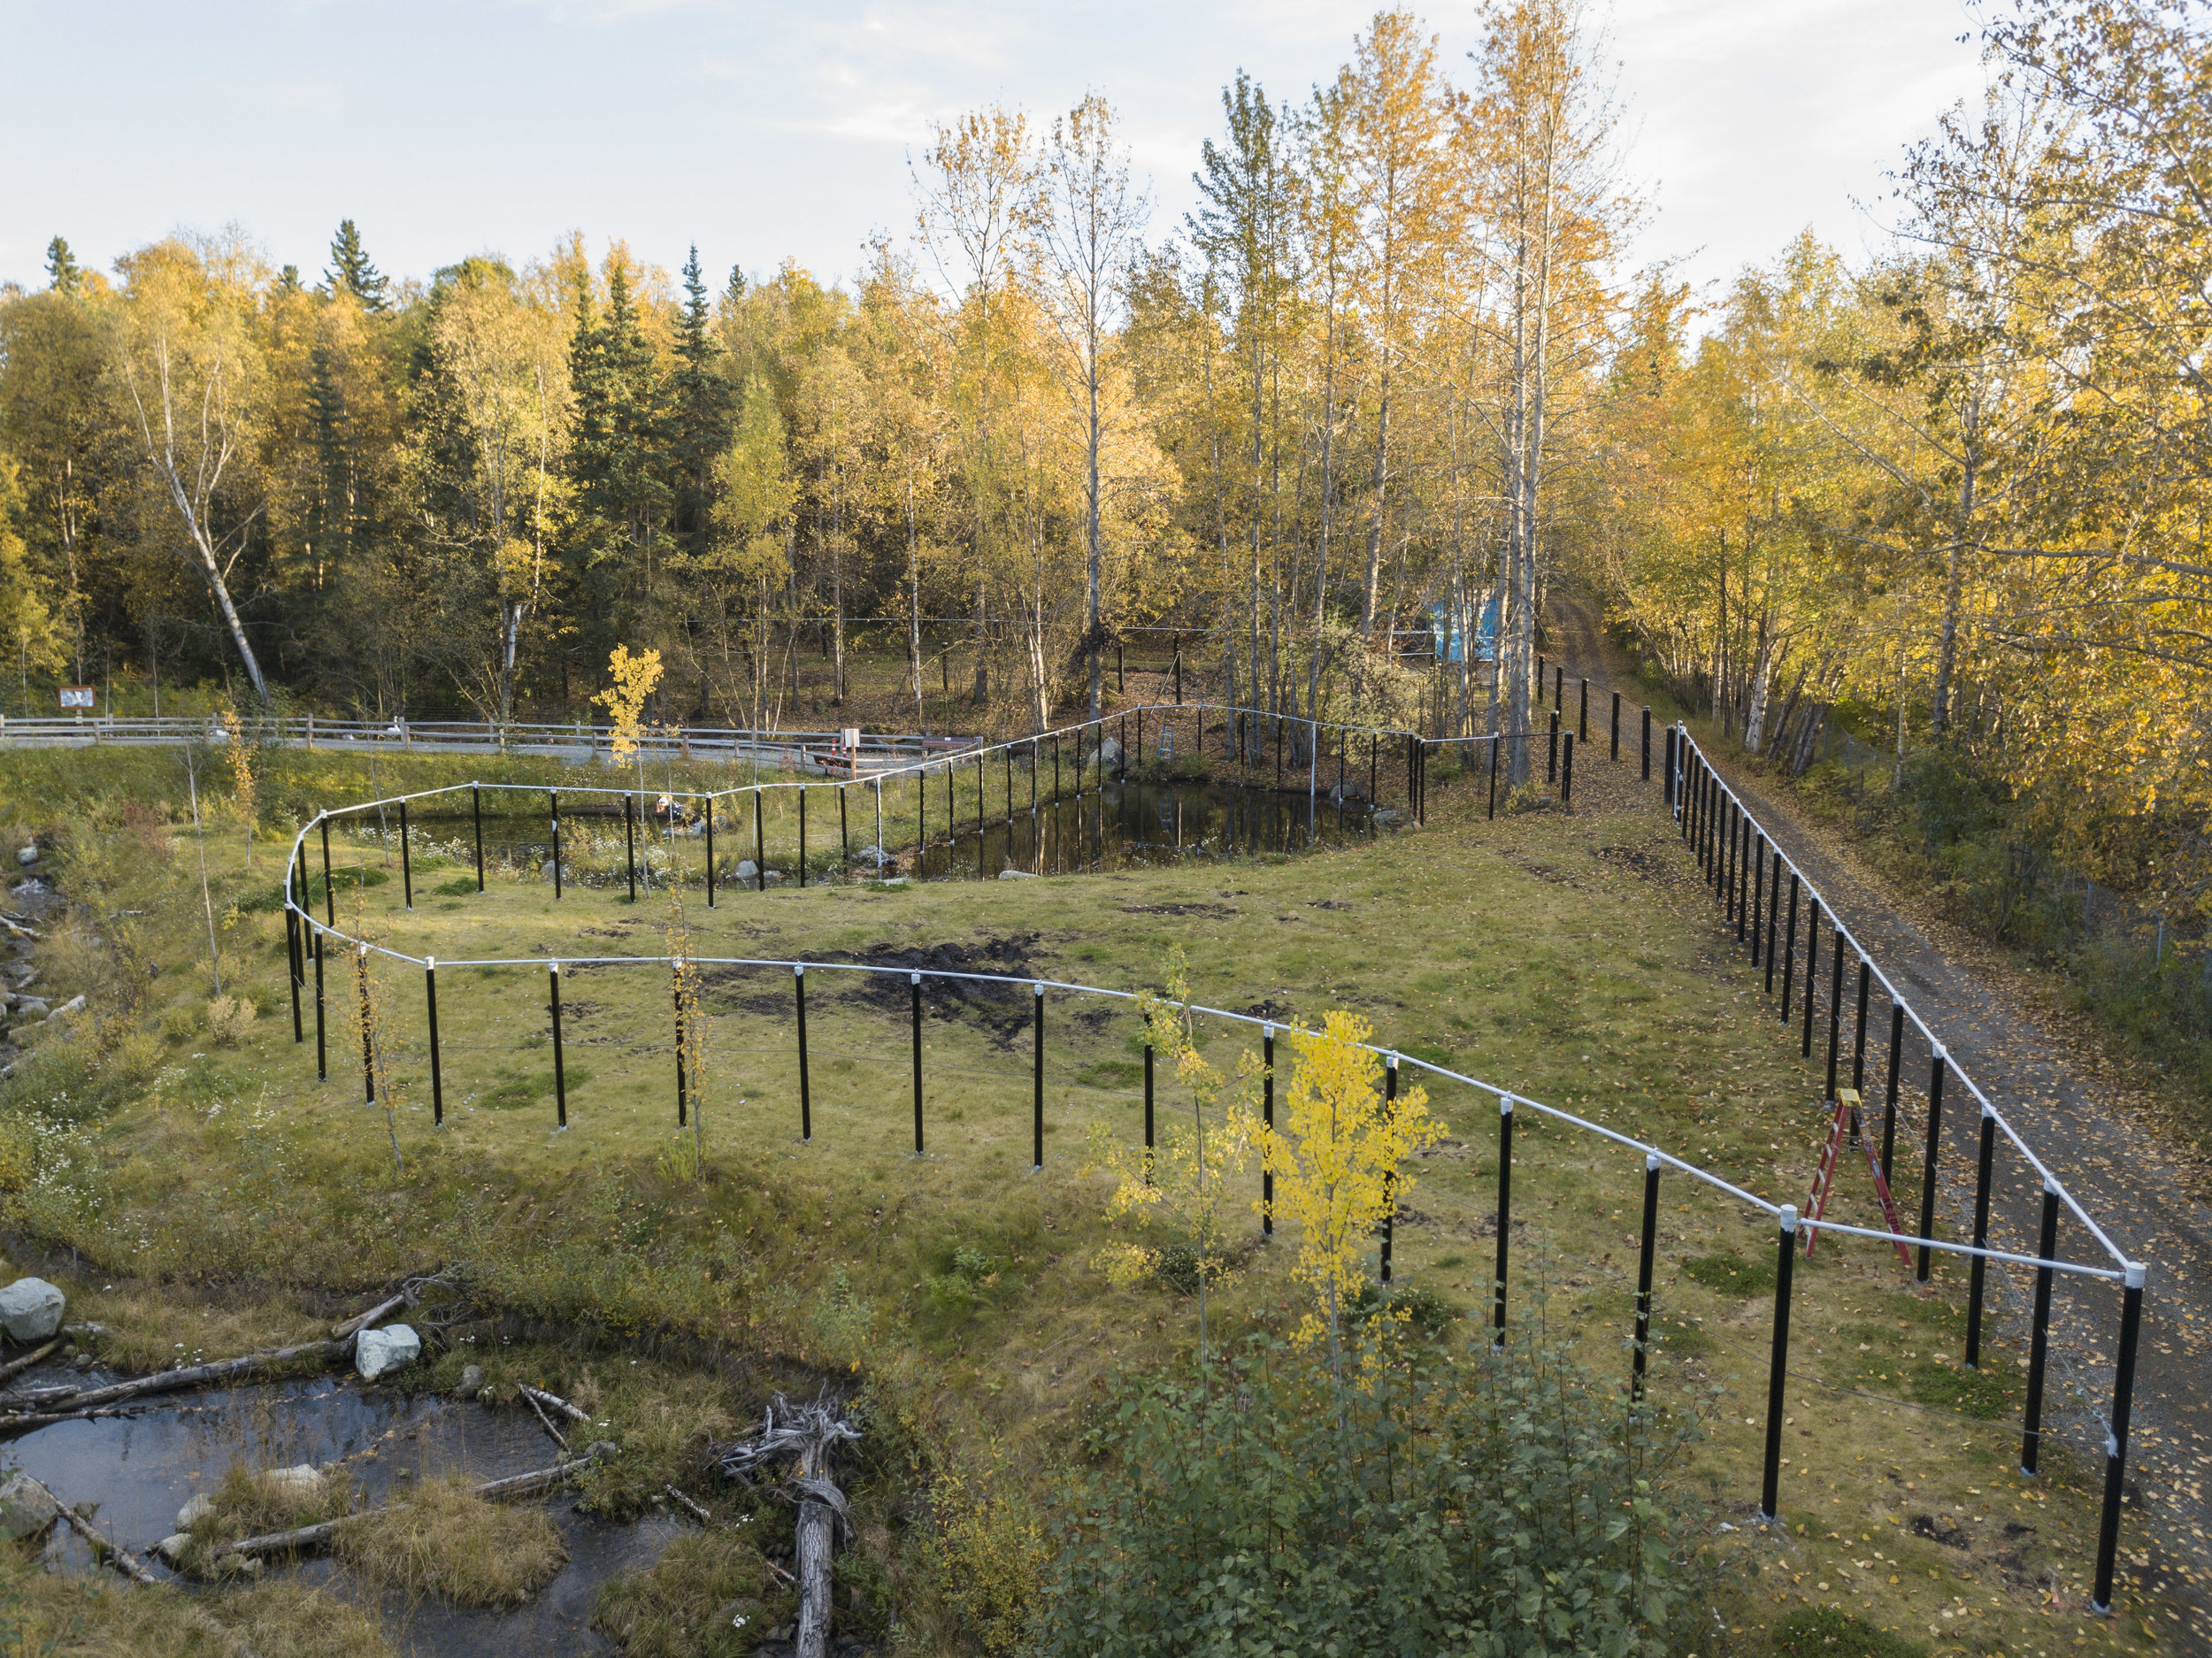 Aerial view of the completed Little Campbell Creek restoration area with the new moose habitat fence in place. Image by John Gomes,  www.akjohn.com .